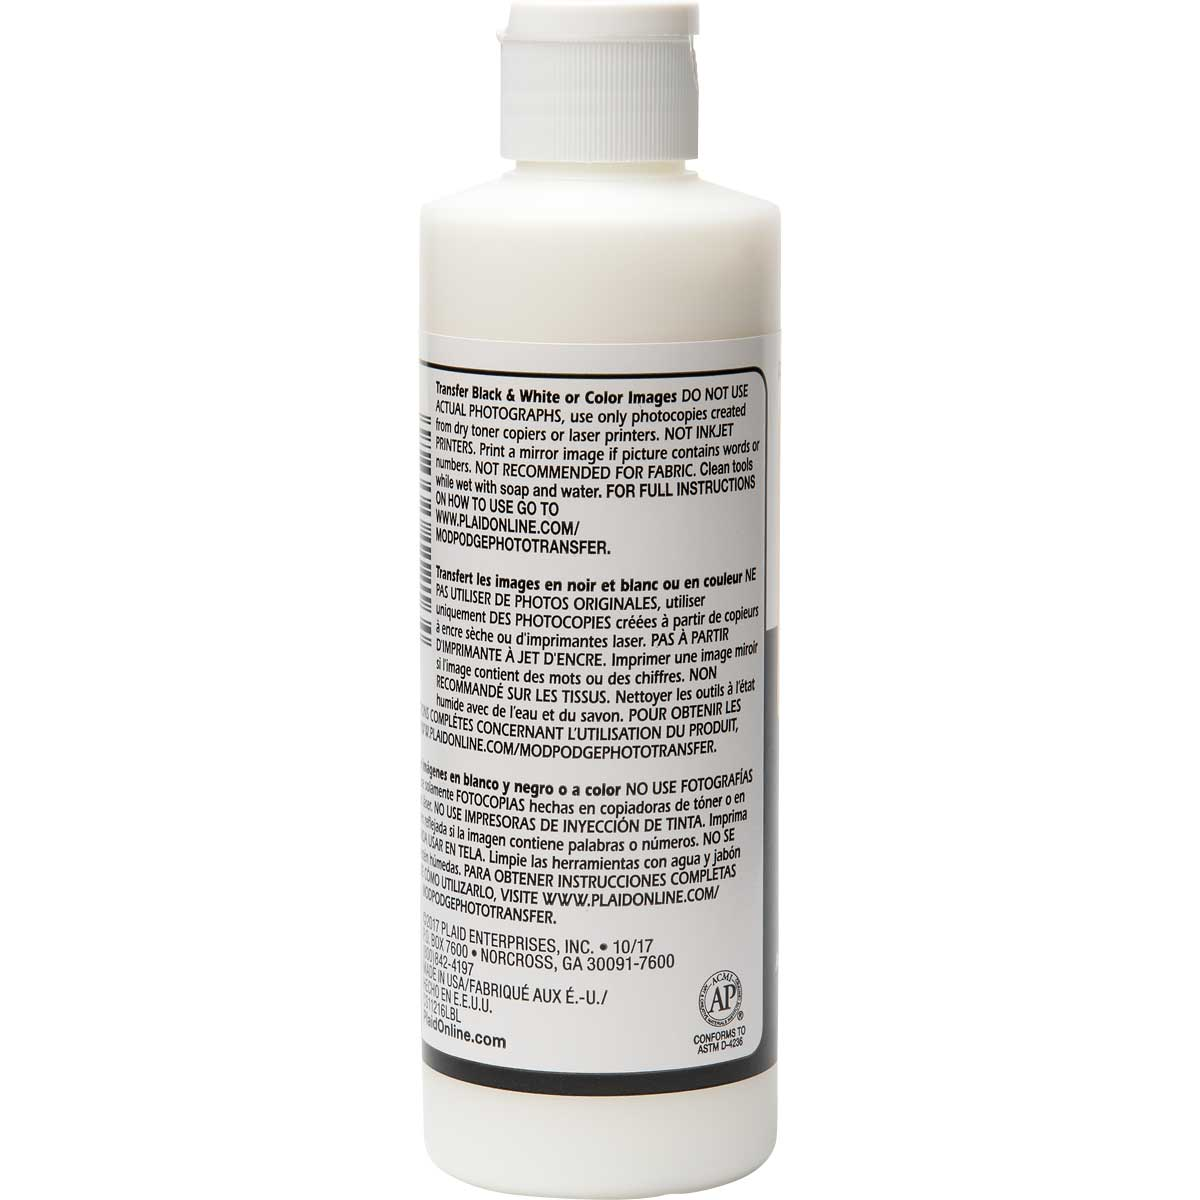 Mod Podge ® Image Transfer Medium Clear, 8 oz. - CS11216